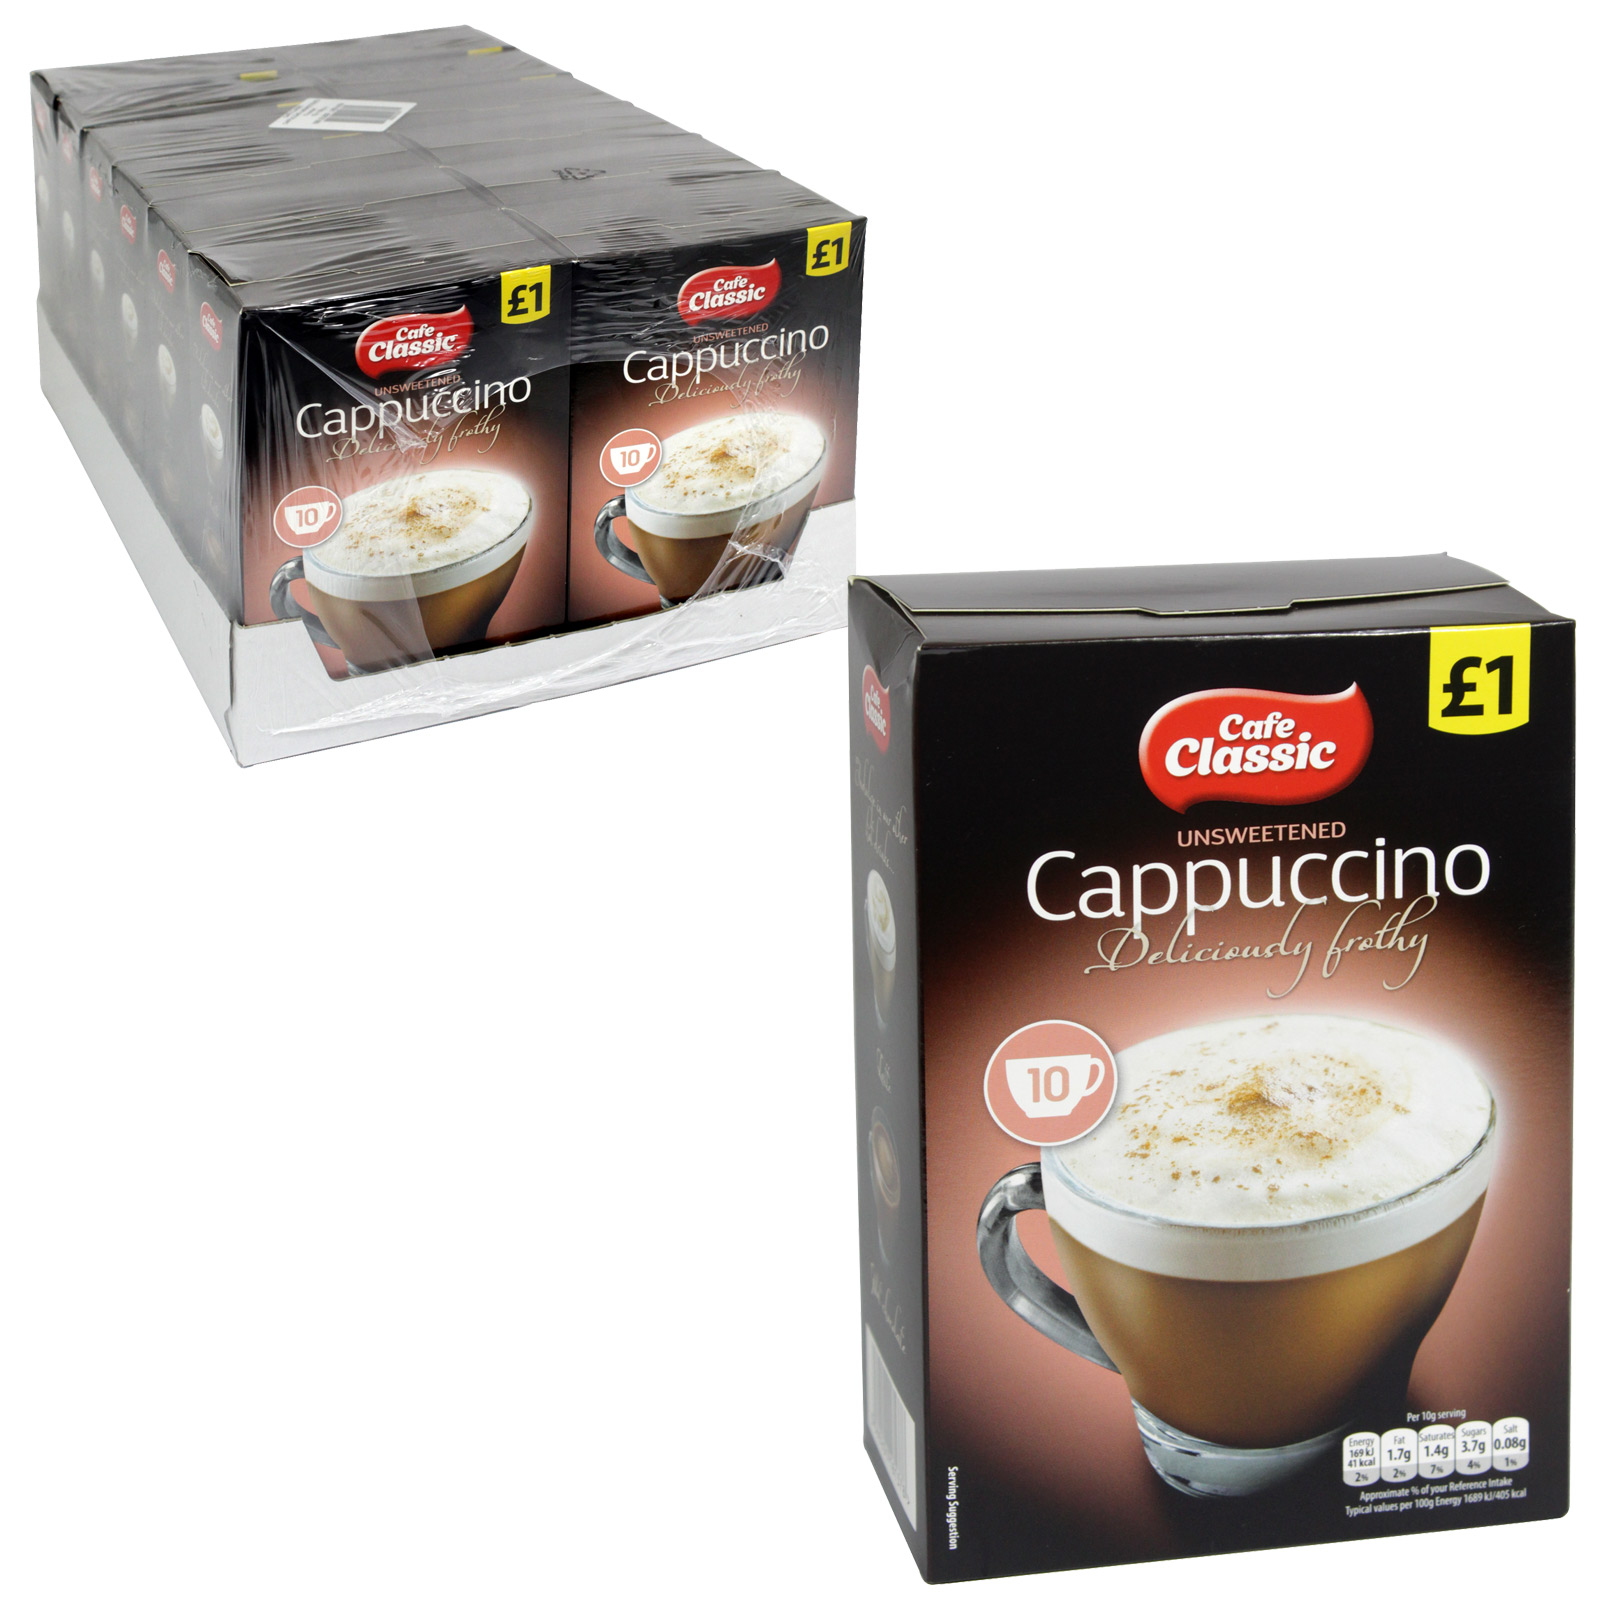 CAFE CLASSIC CAPPUCCINO UNSWEETENED 10PK PM?1 X12